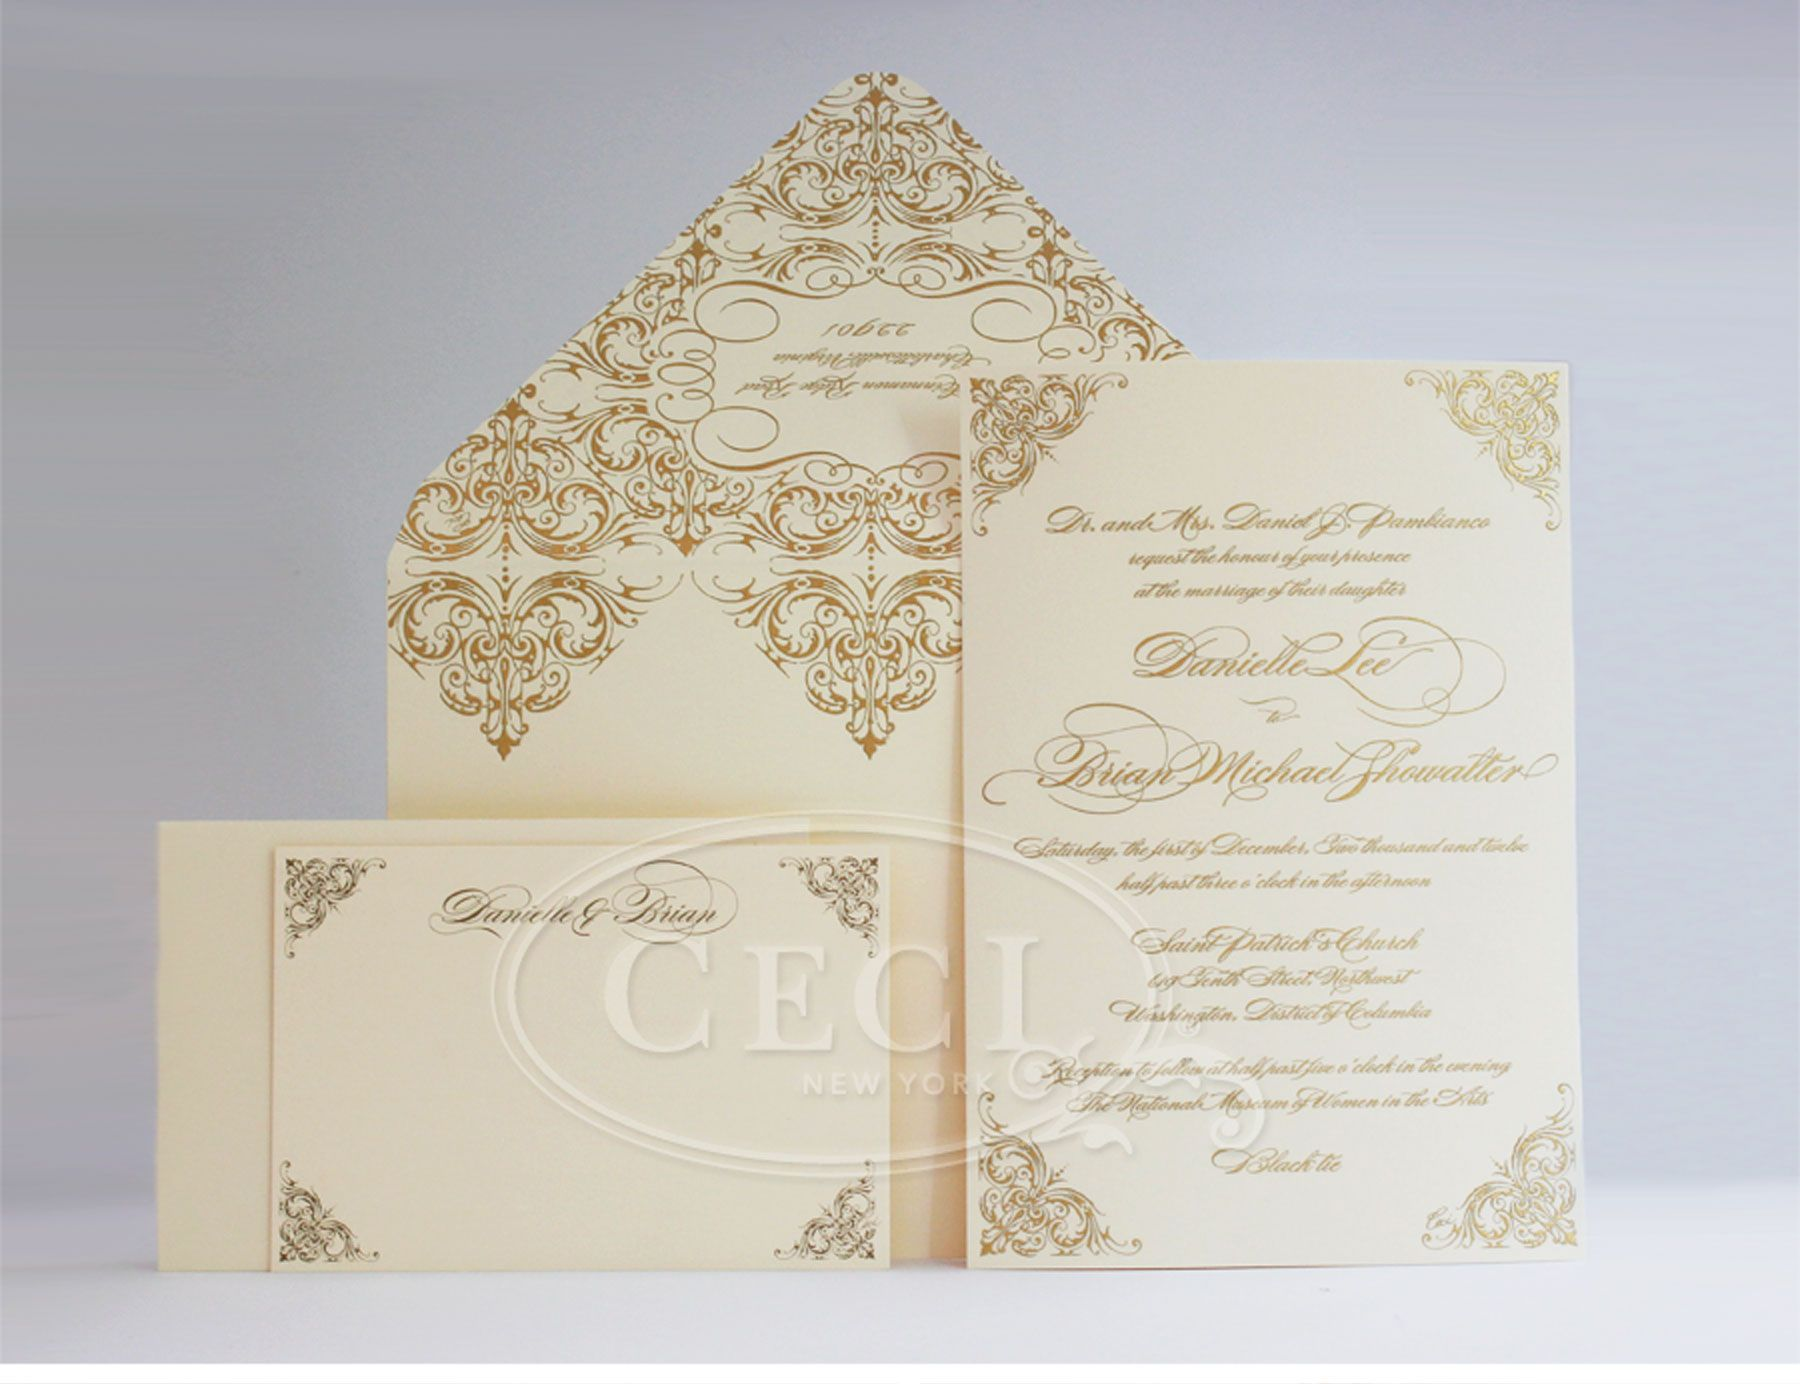 tie ribbon wedding invitation%0A Luxury Wedding Invitations by Ceci New York  Our Muse  Elegant Masquerade  Wedding  Be